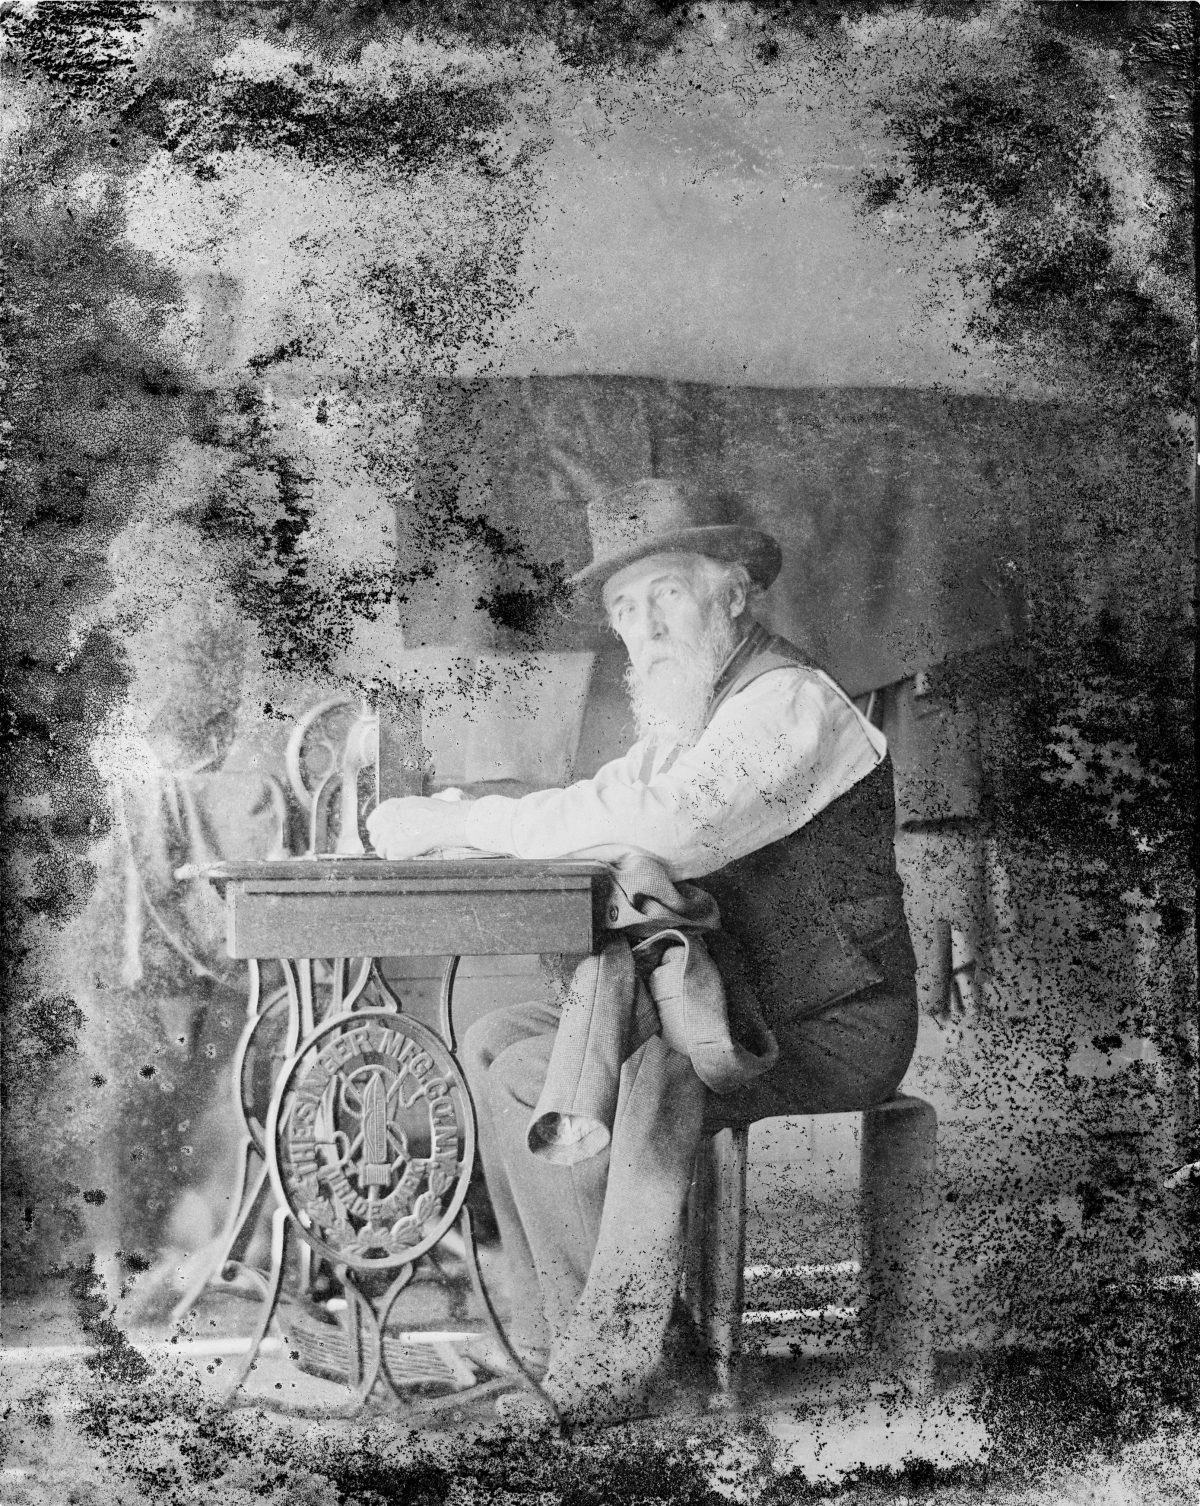 Man working at sewing machineGeorge Silas Duntley Photographs 1899-1918